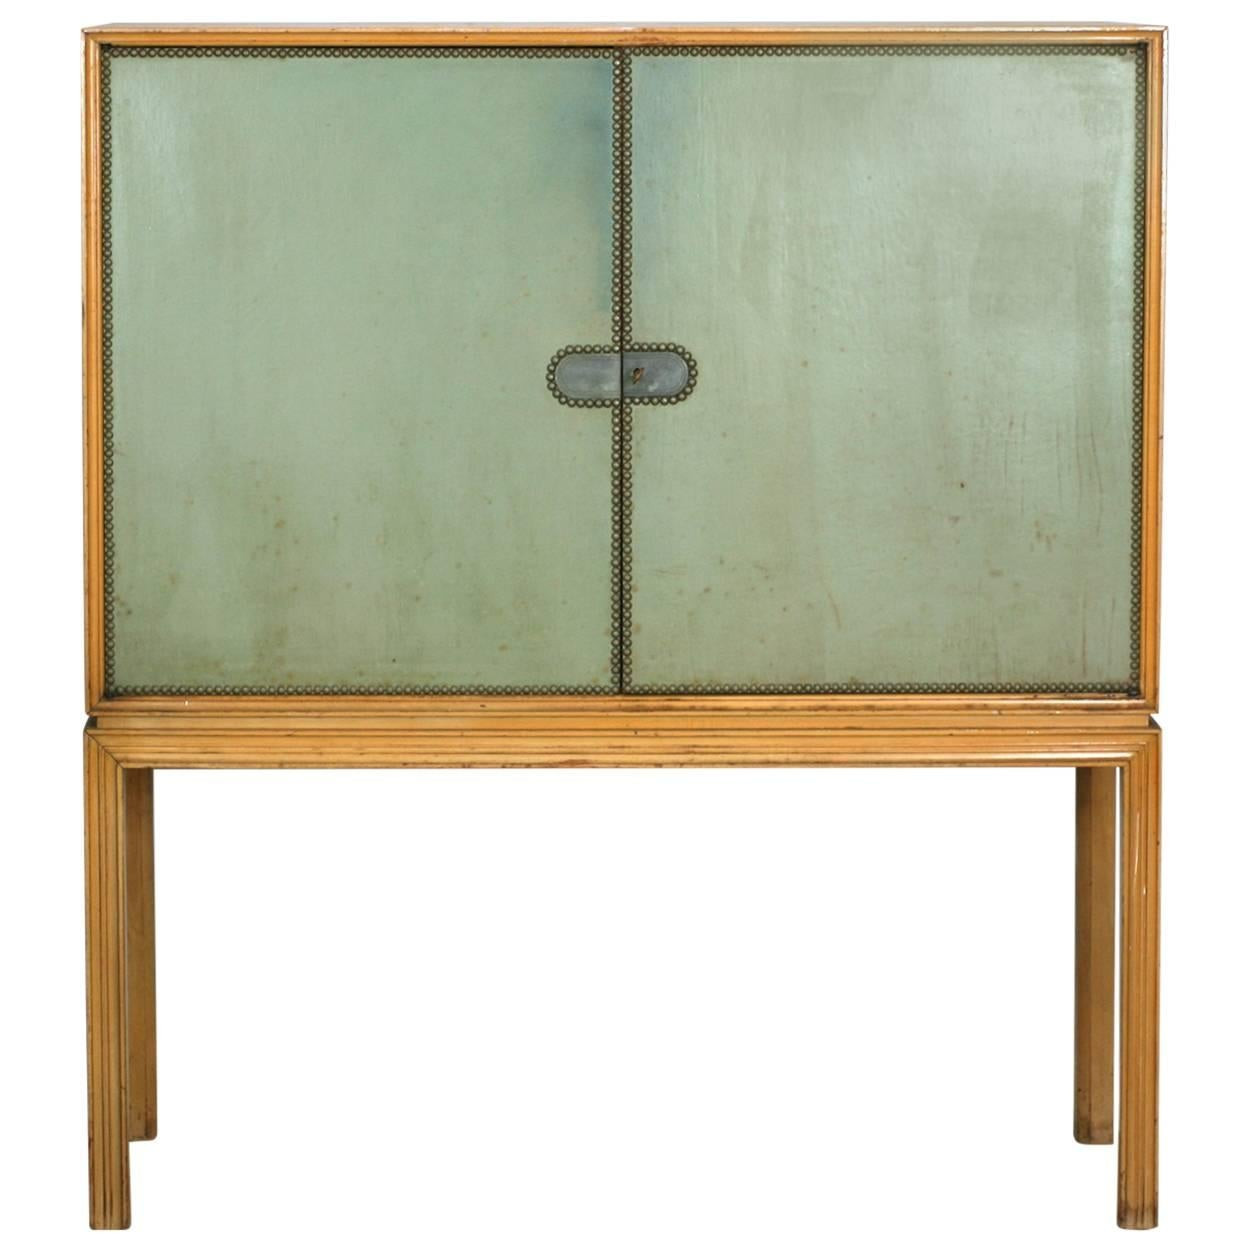 Tommi Parzinger Chest on Stand, Charak Modern